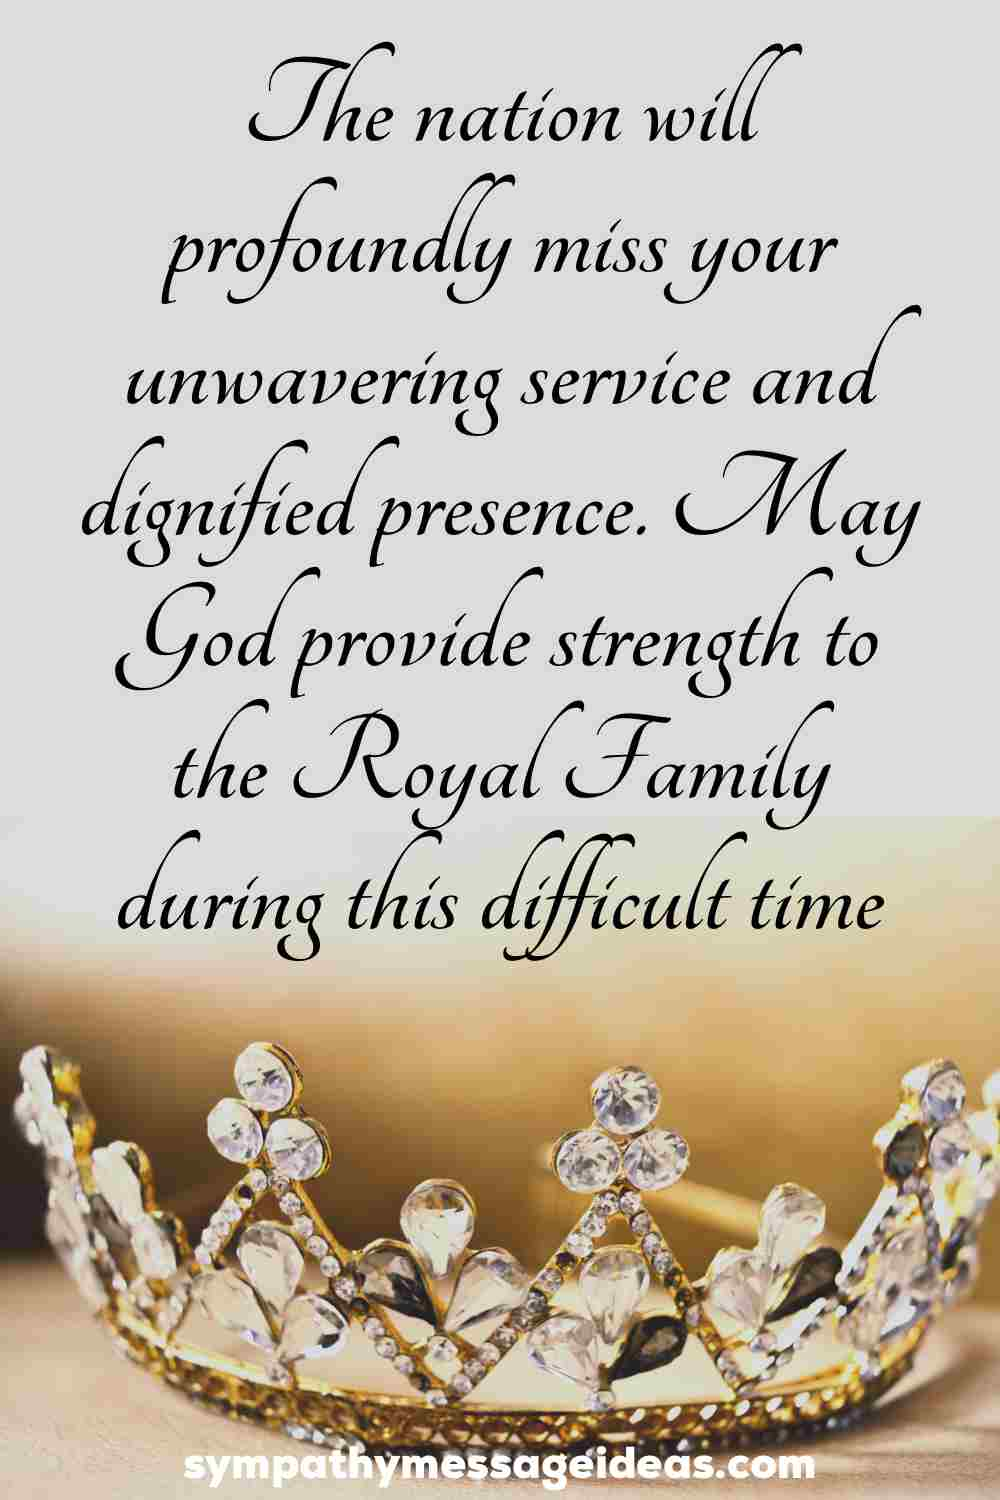 sympathy message for loss of queen